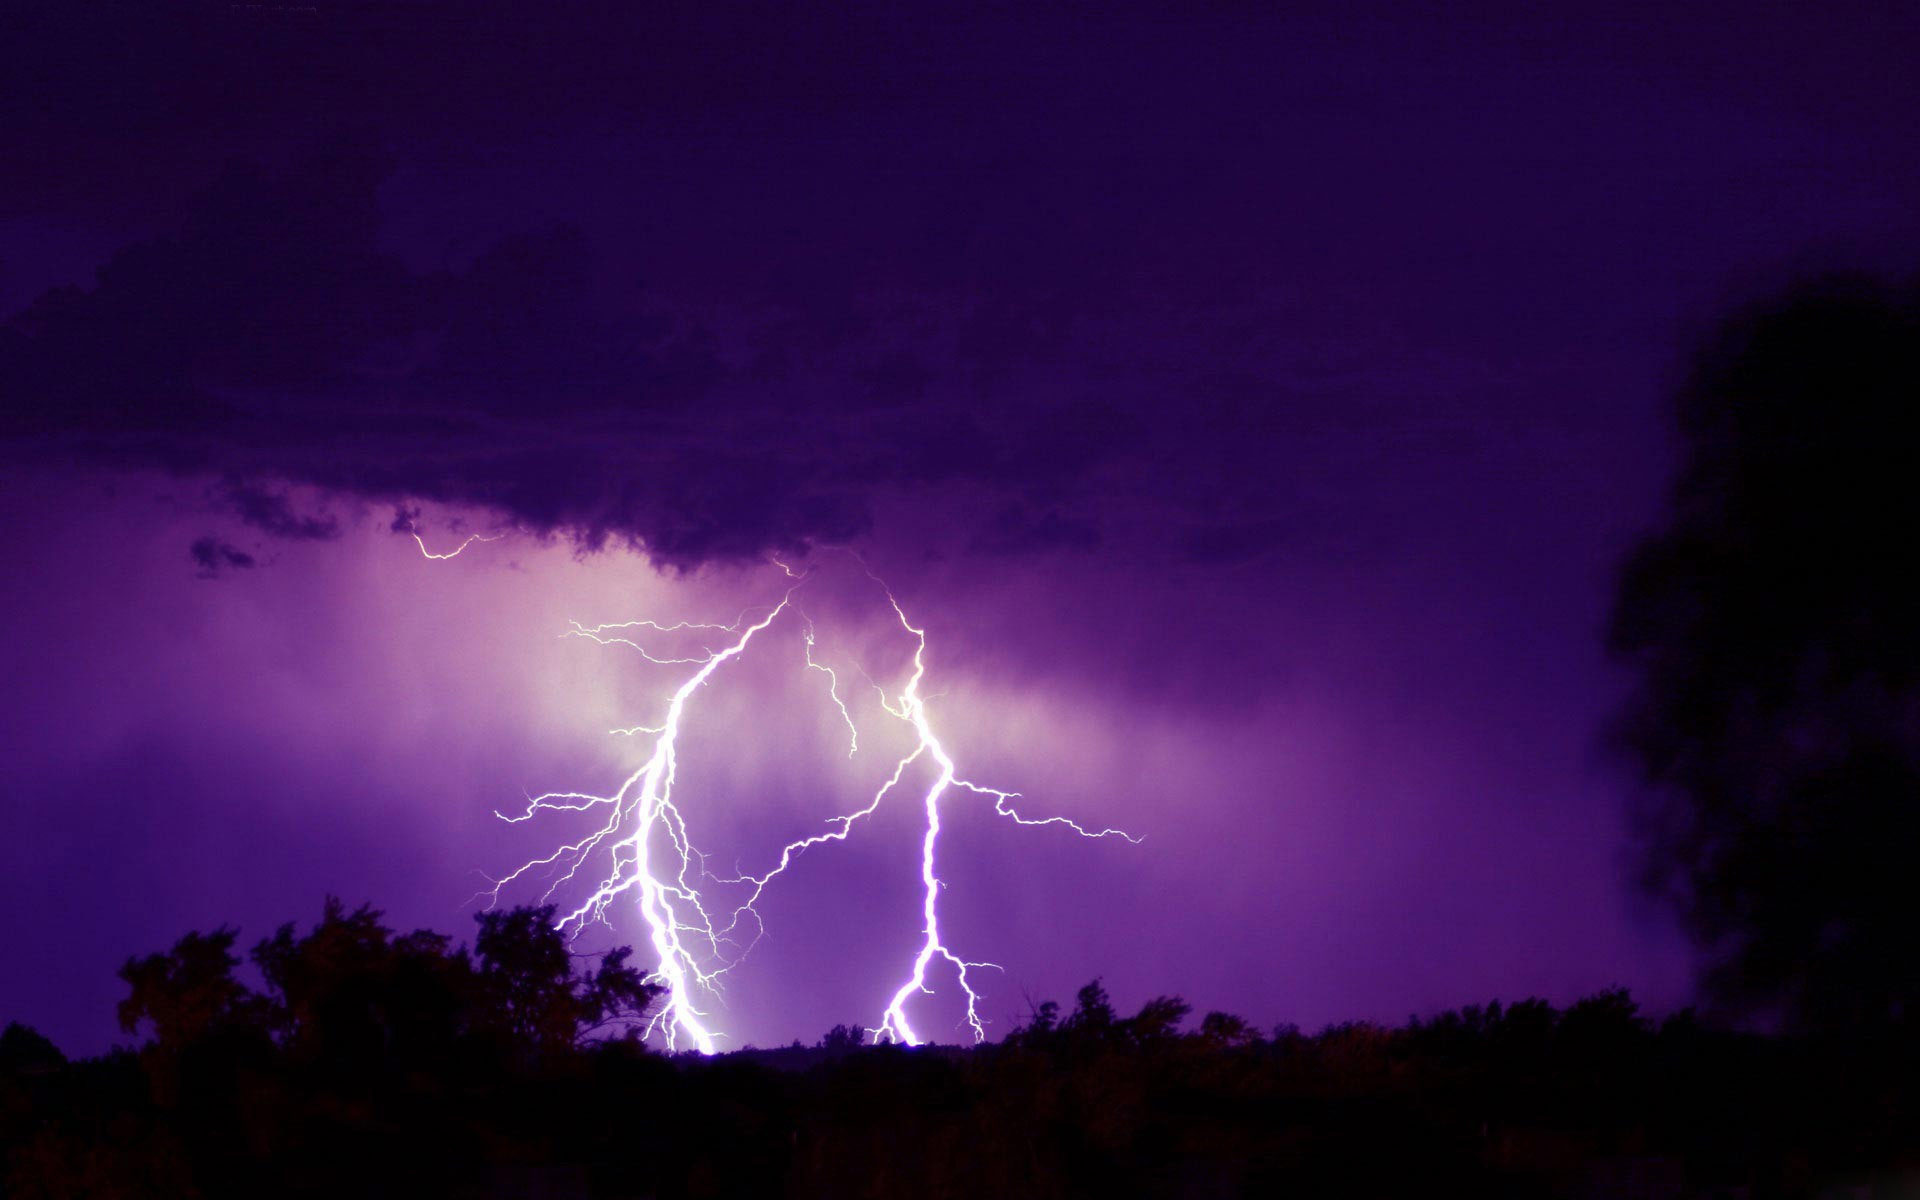 tornado lightning storm live wallpaper for android With Resolutions 1920x1200